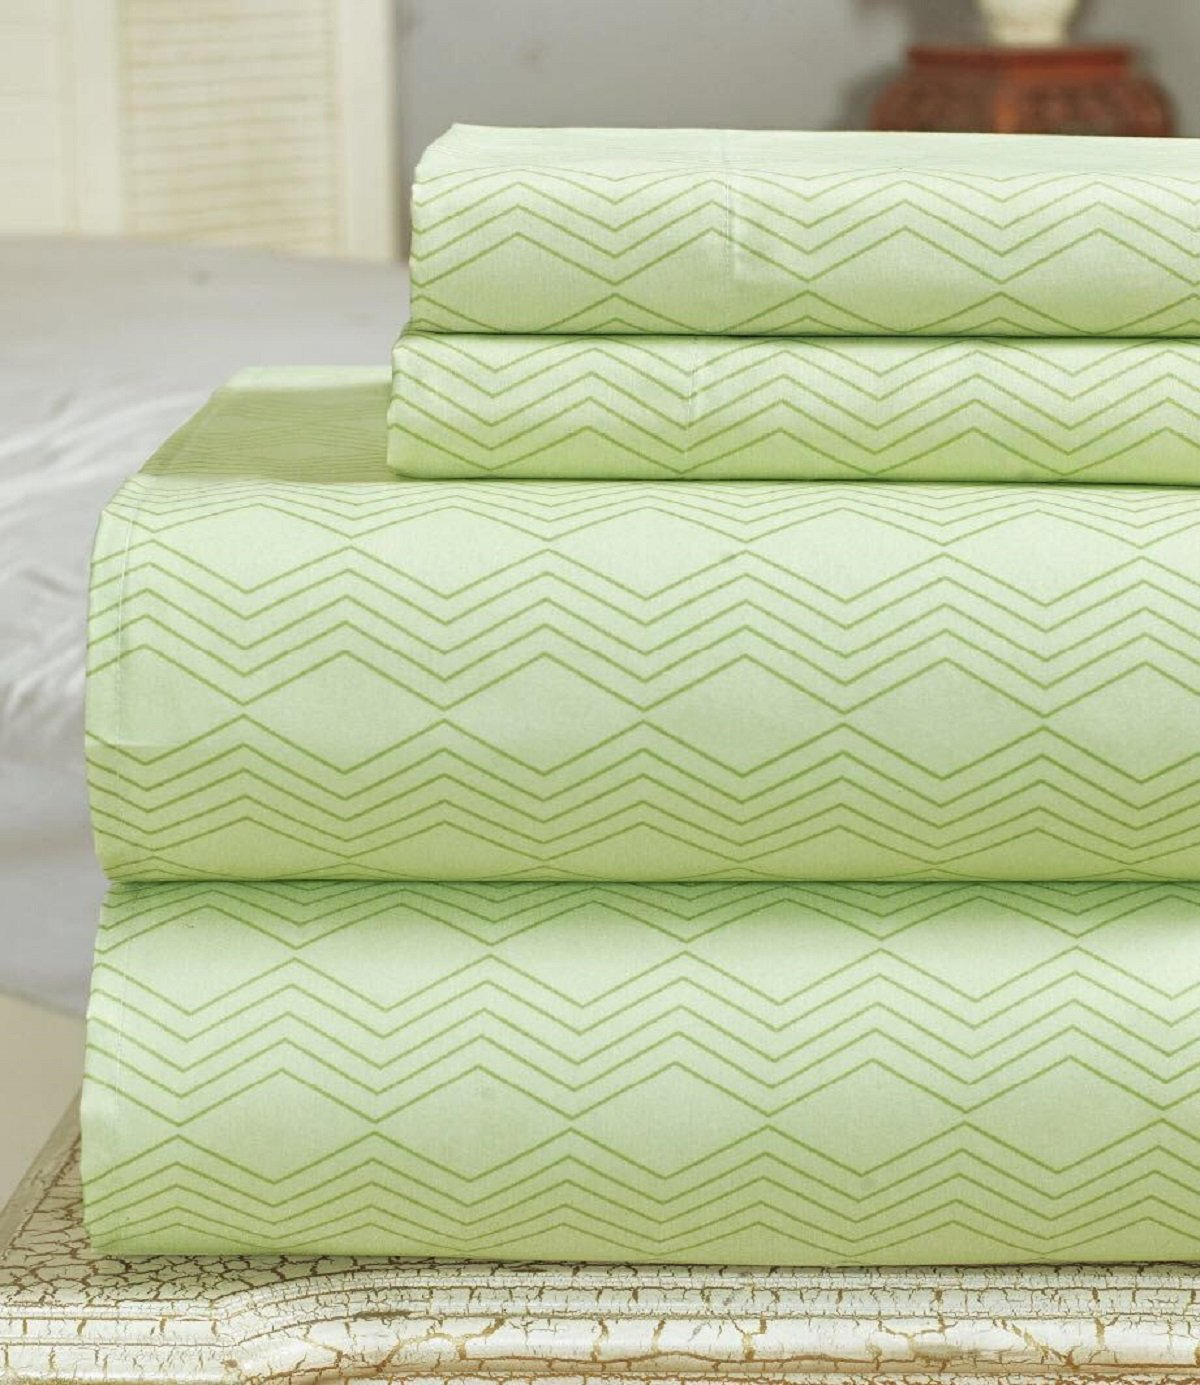 Bamboo Comfort Plus 2400 Series Sheet set (Olive, Double)